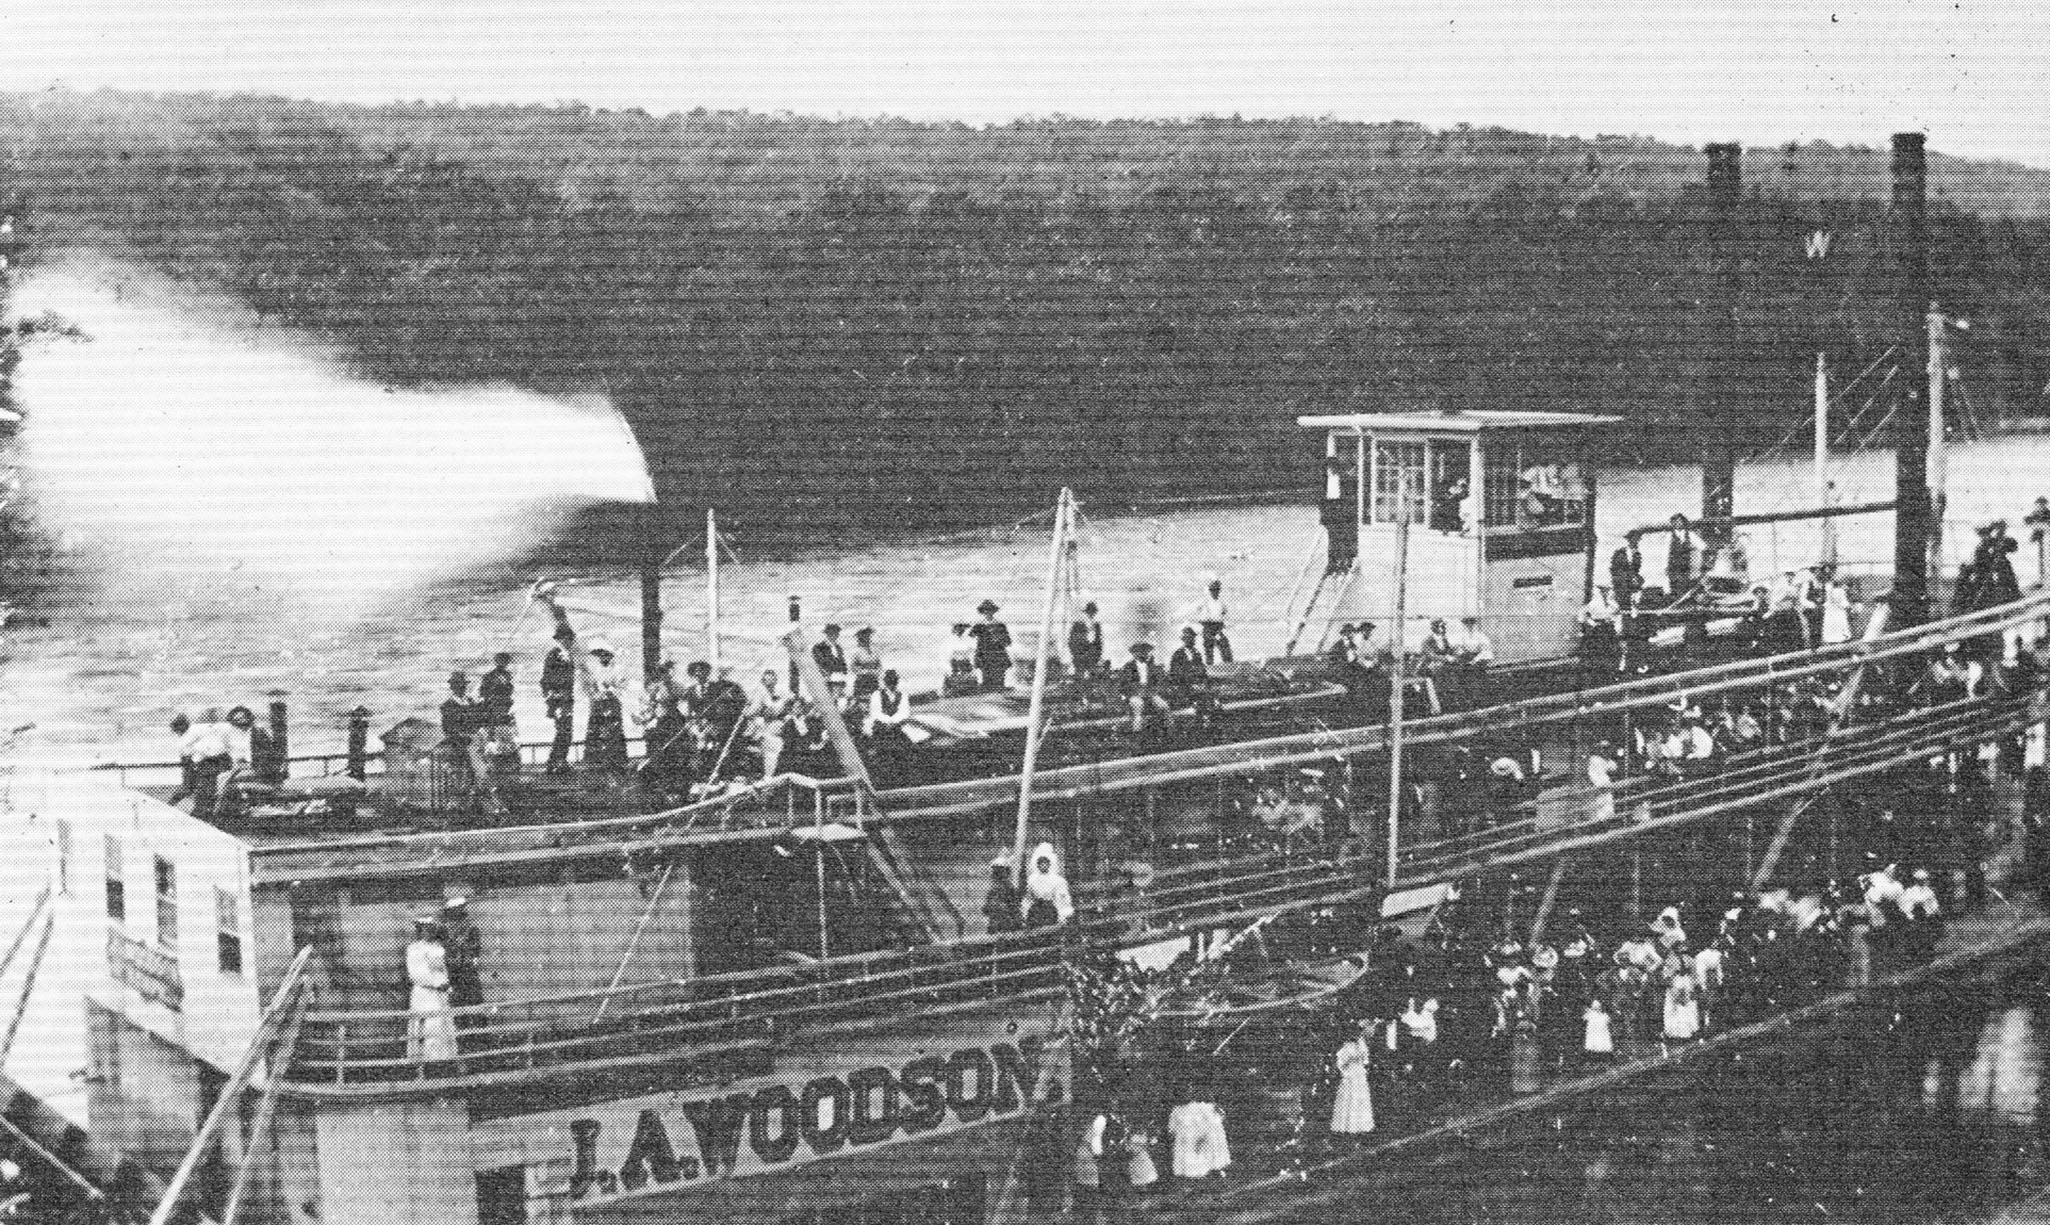 Caption for photo:  The J.A. Woodson with an excursion on the White River in the 1880s. (Keith Norrington collection)